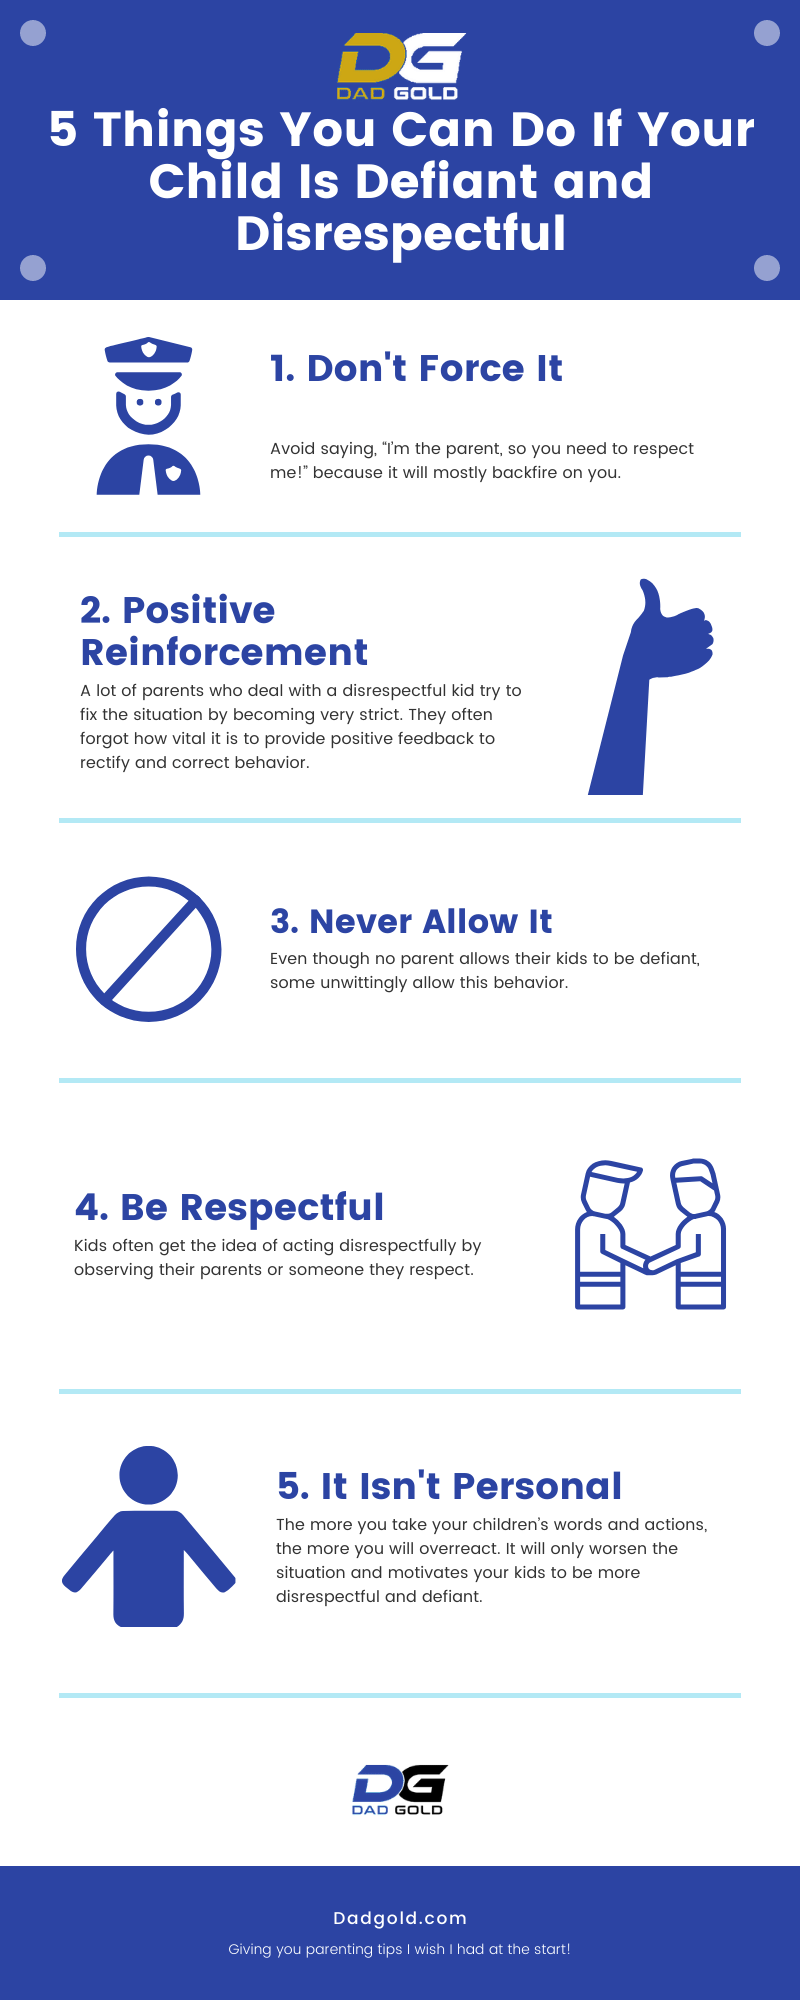 Child Is Defiant and Disrespectful Infographic